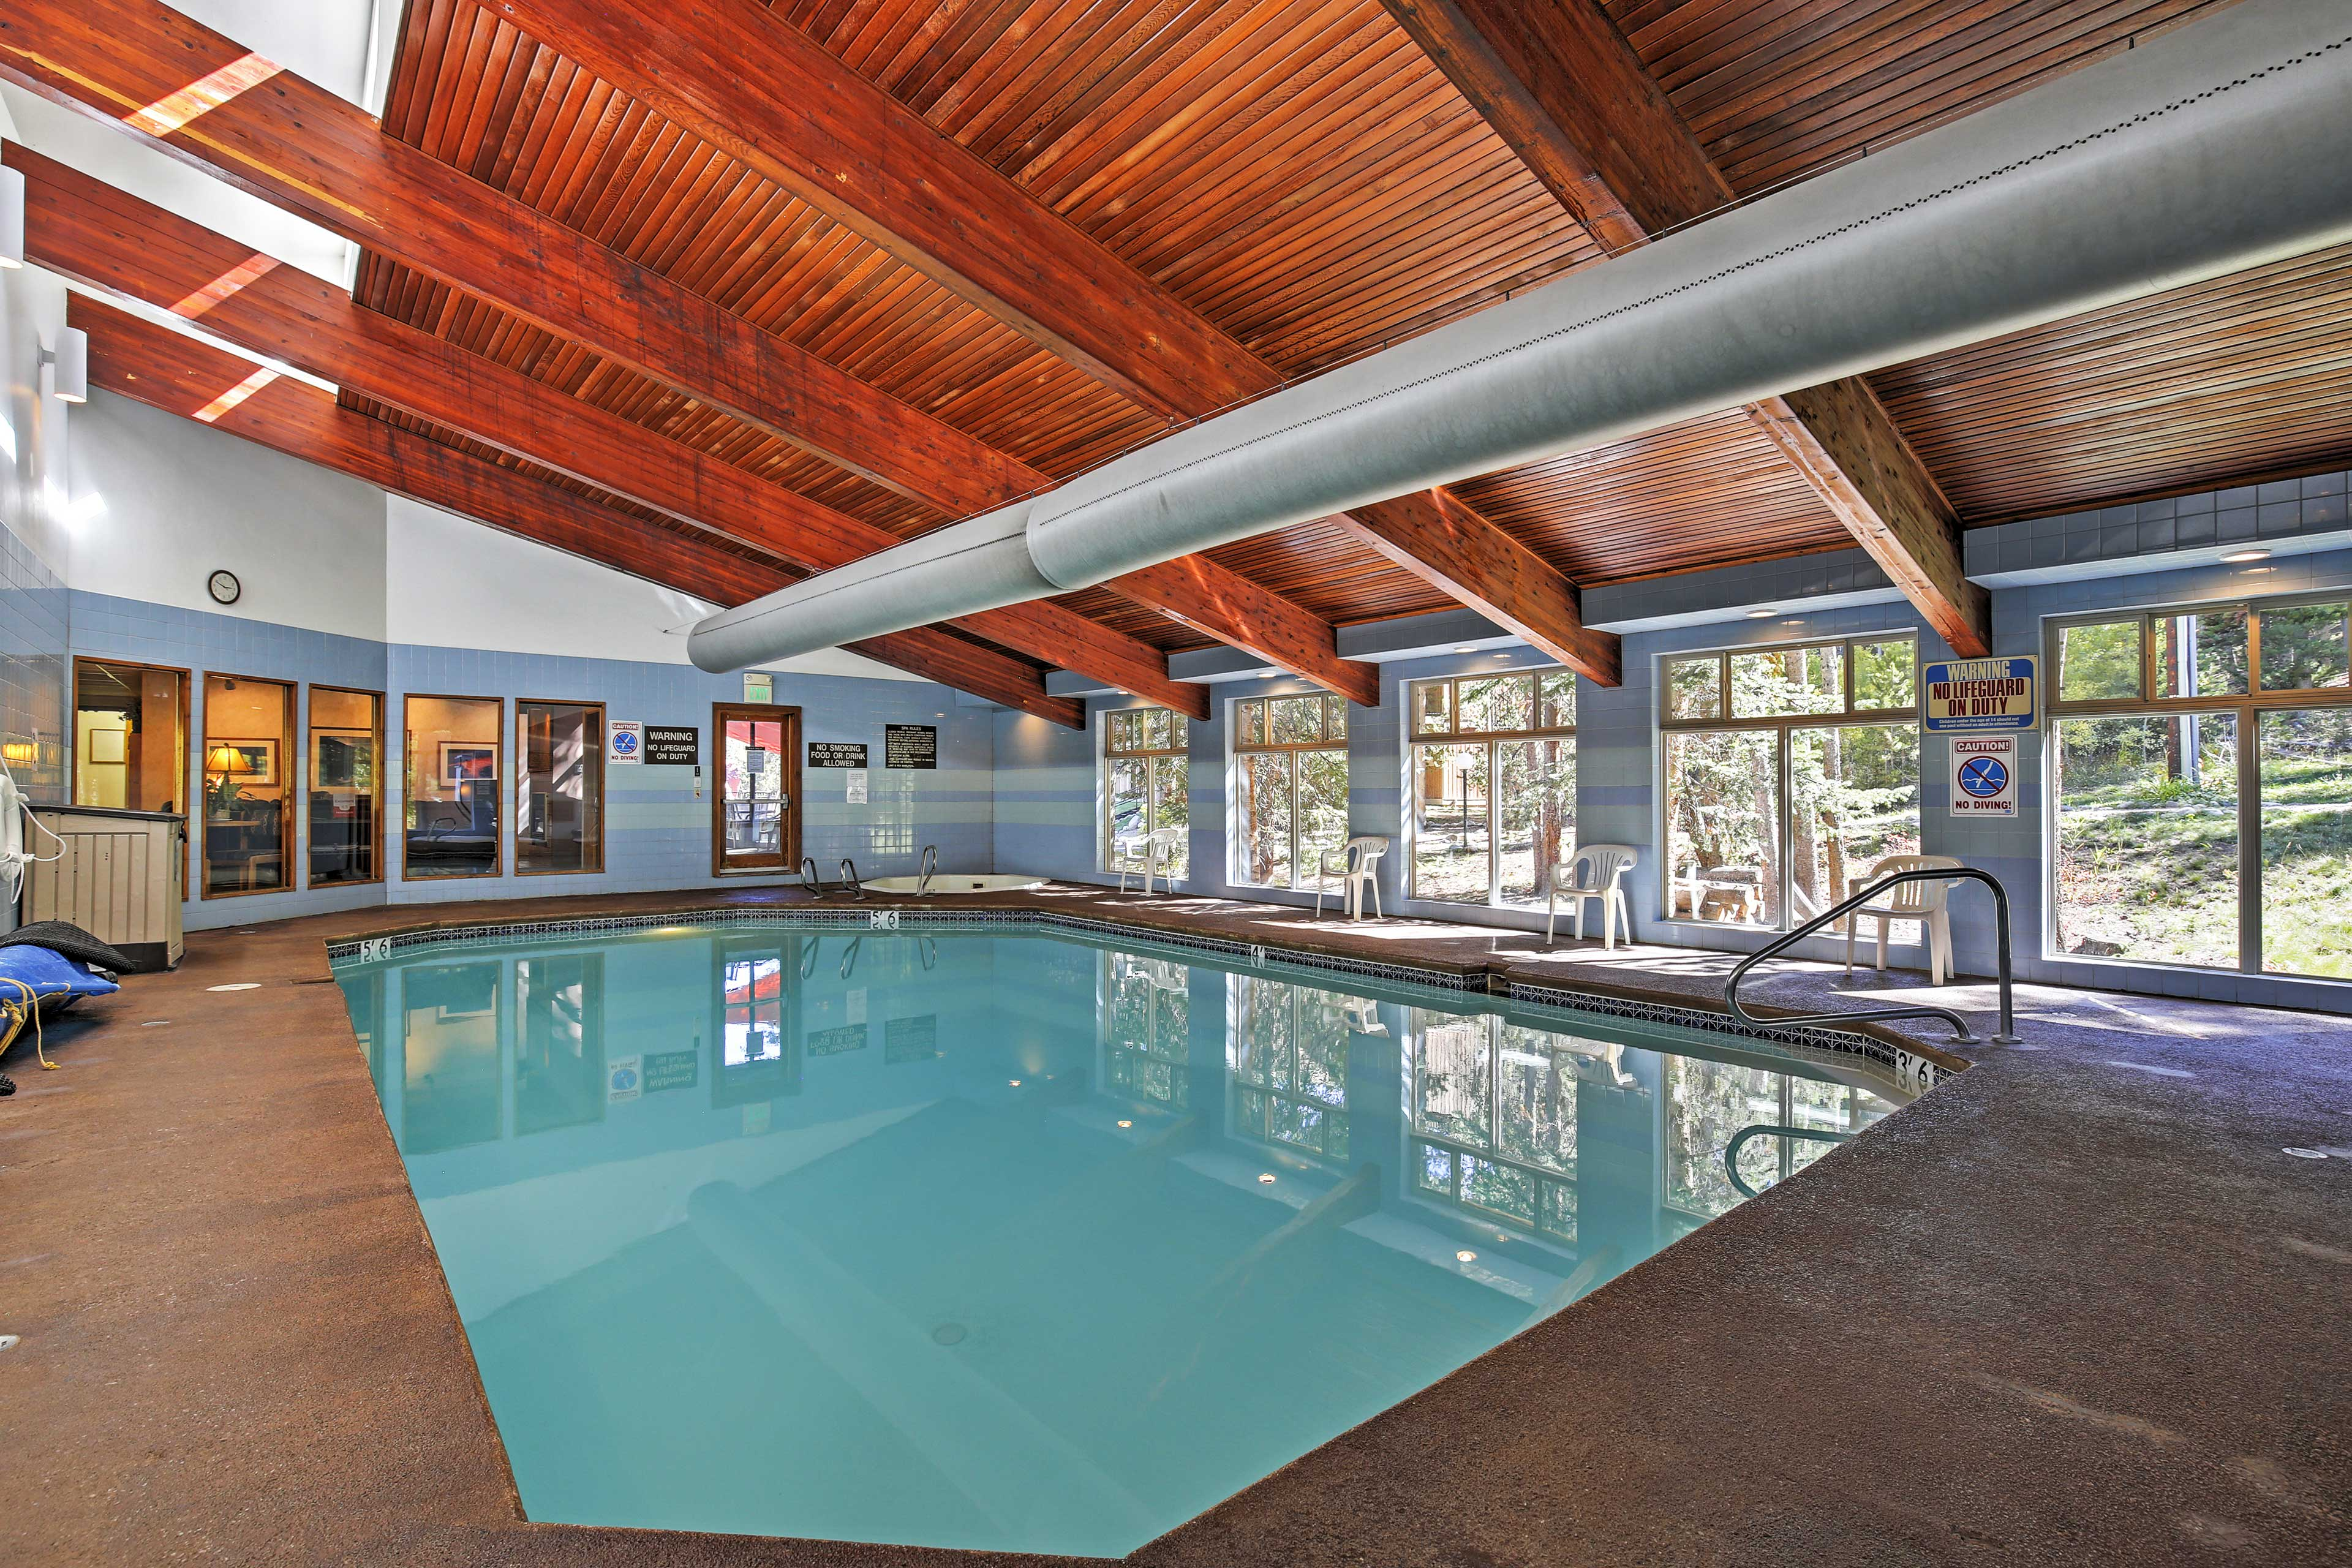 Splash around with loved ones at the indoor pool.